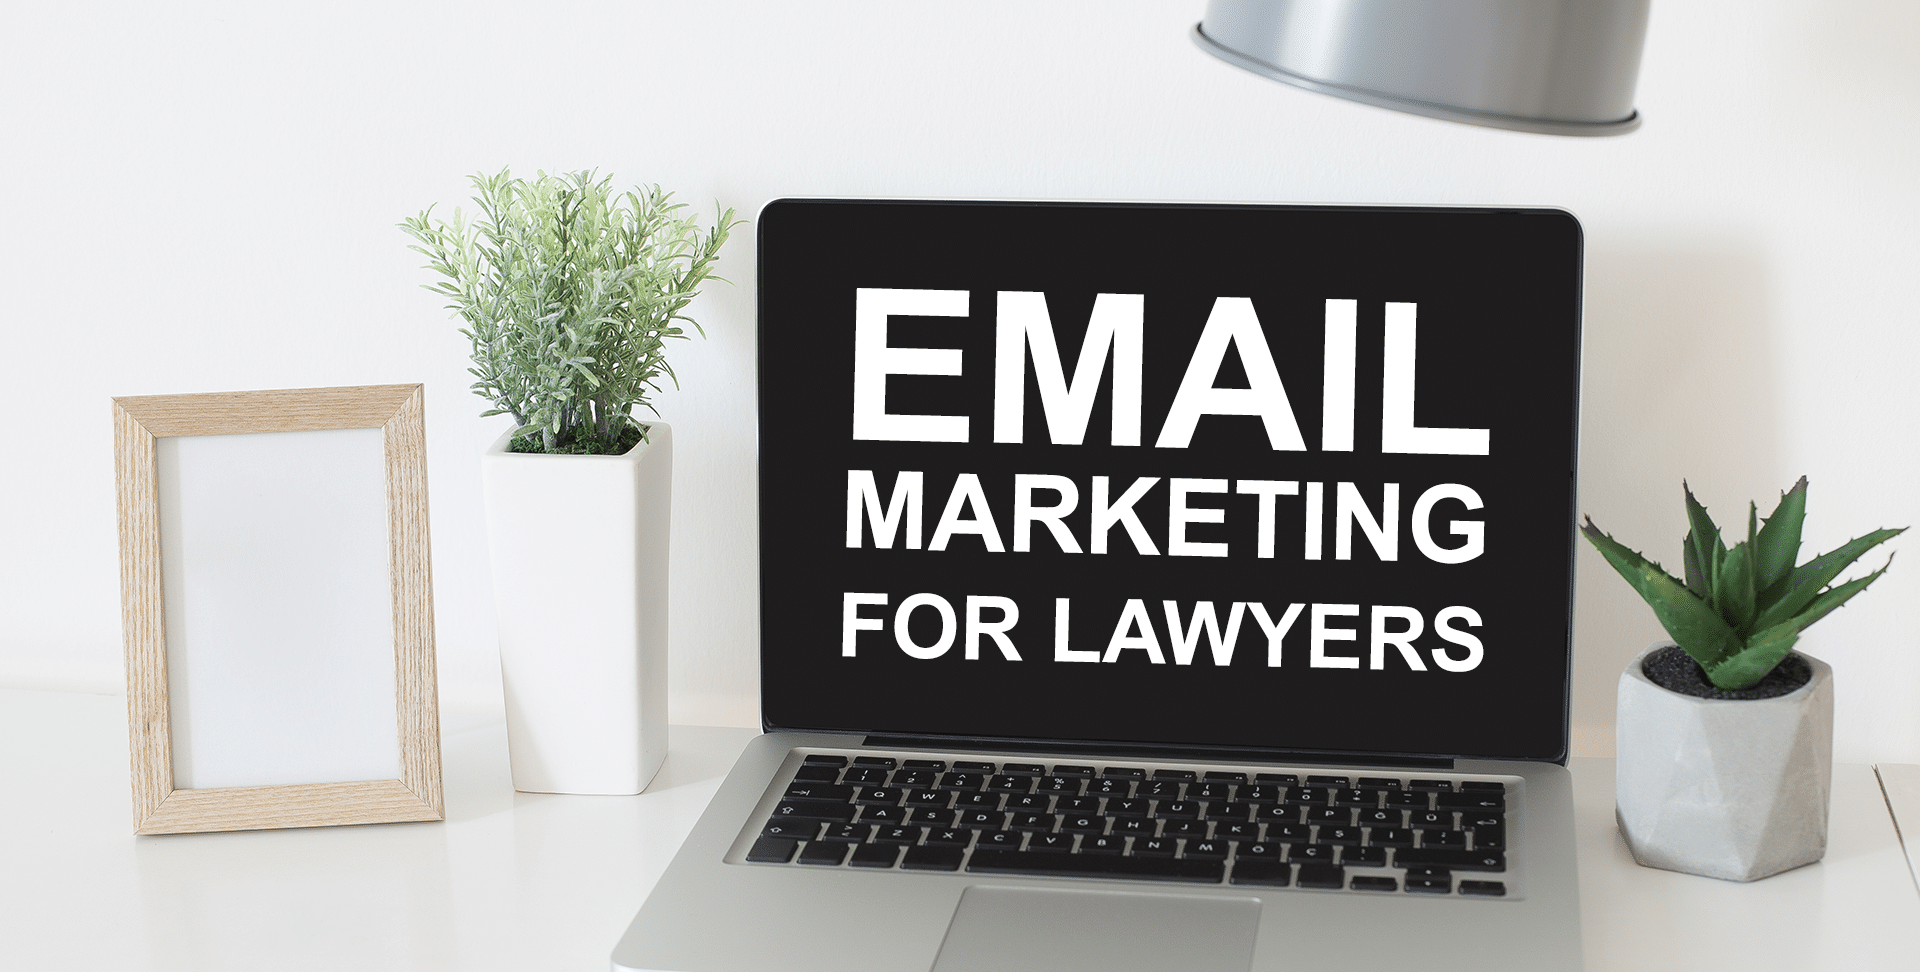 Law Firm Marketing - Ways to Attract More Clients Through Email